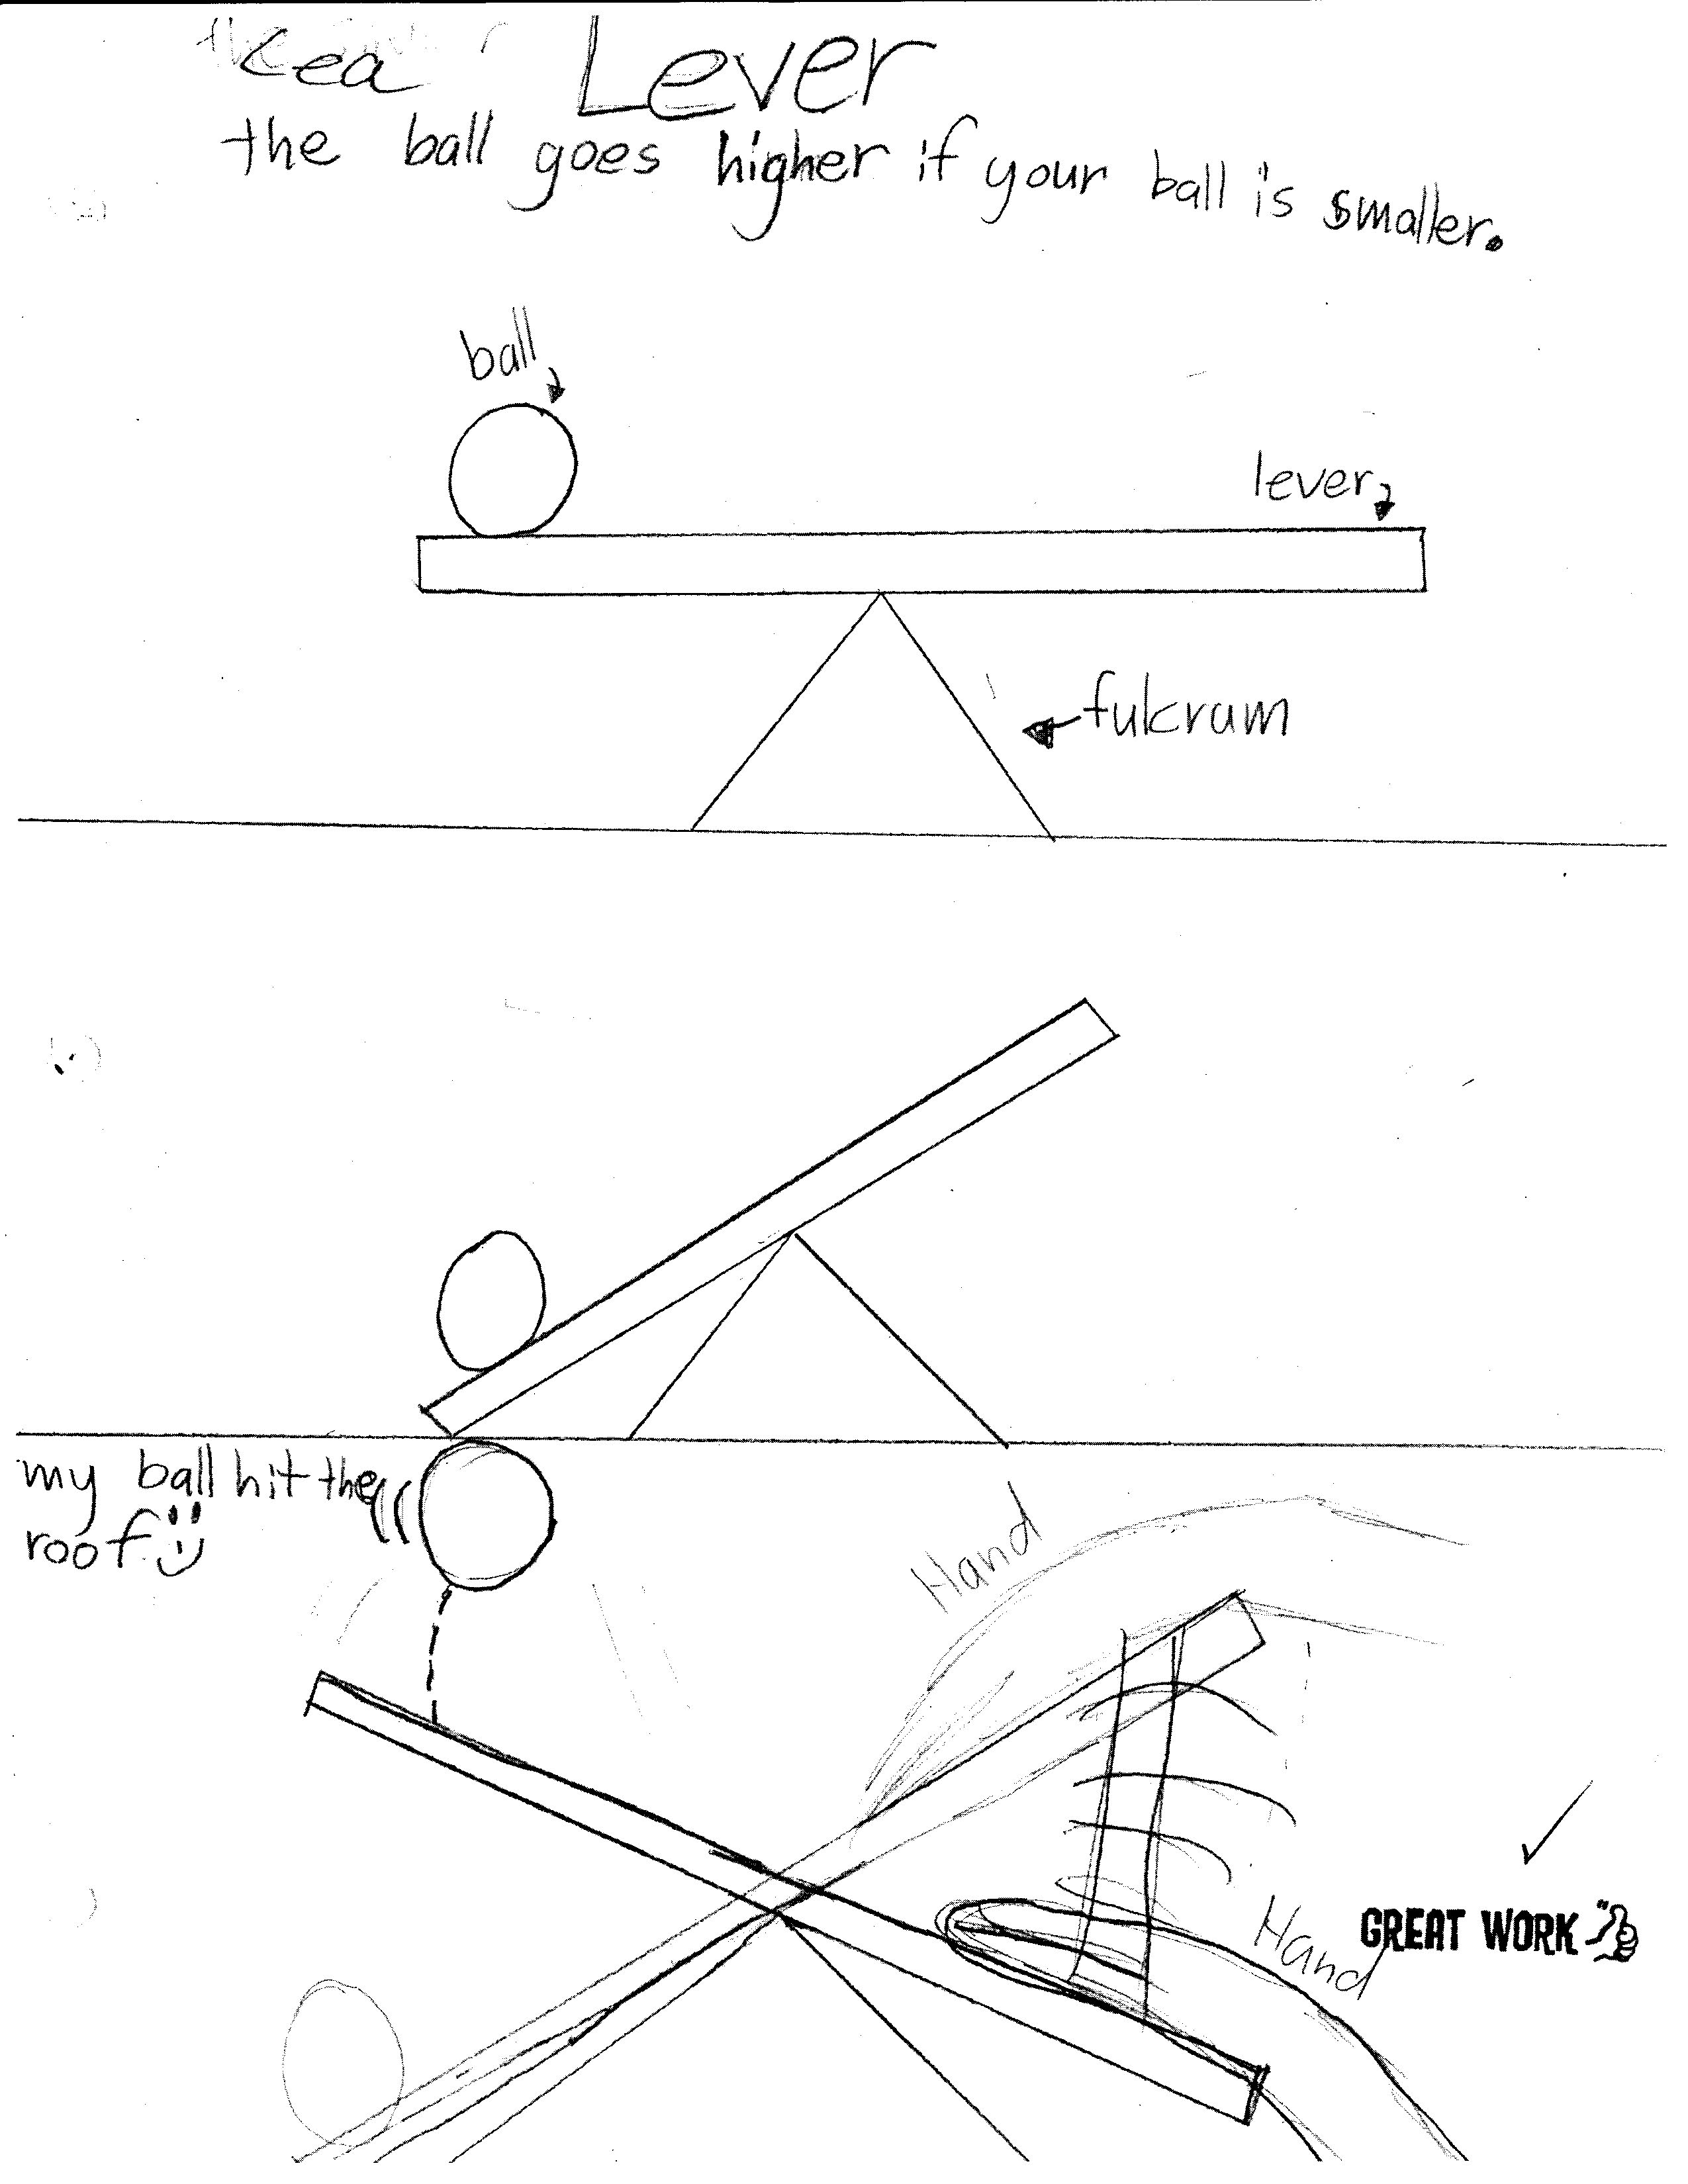 worksheet Worksheet On Simple Machines For Grade 5 lever and fulcrum experimentation projecting a ball ingridscience ca physics simple complex machines 5